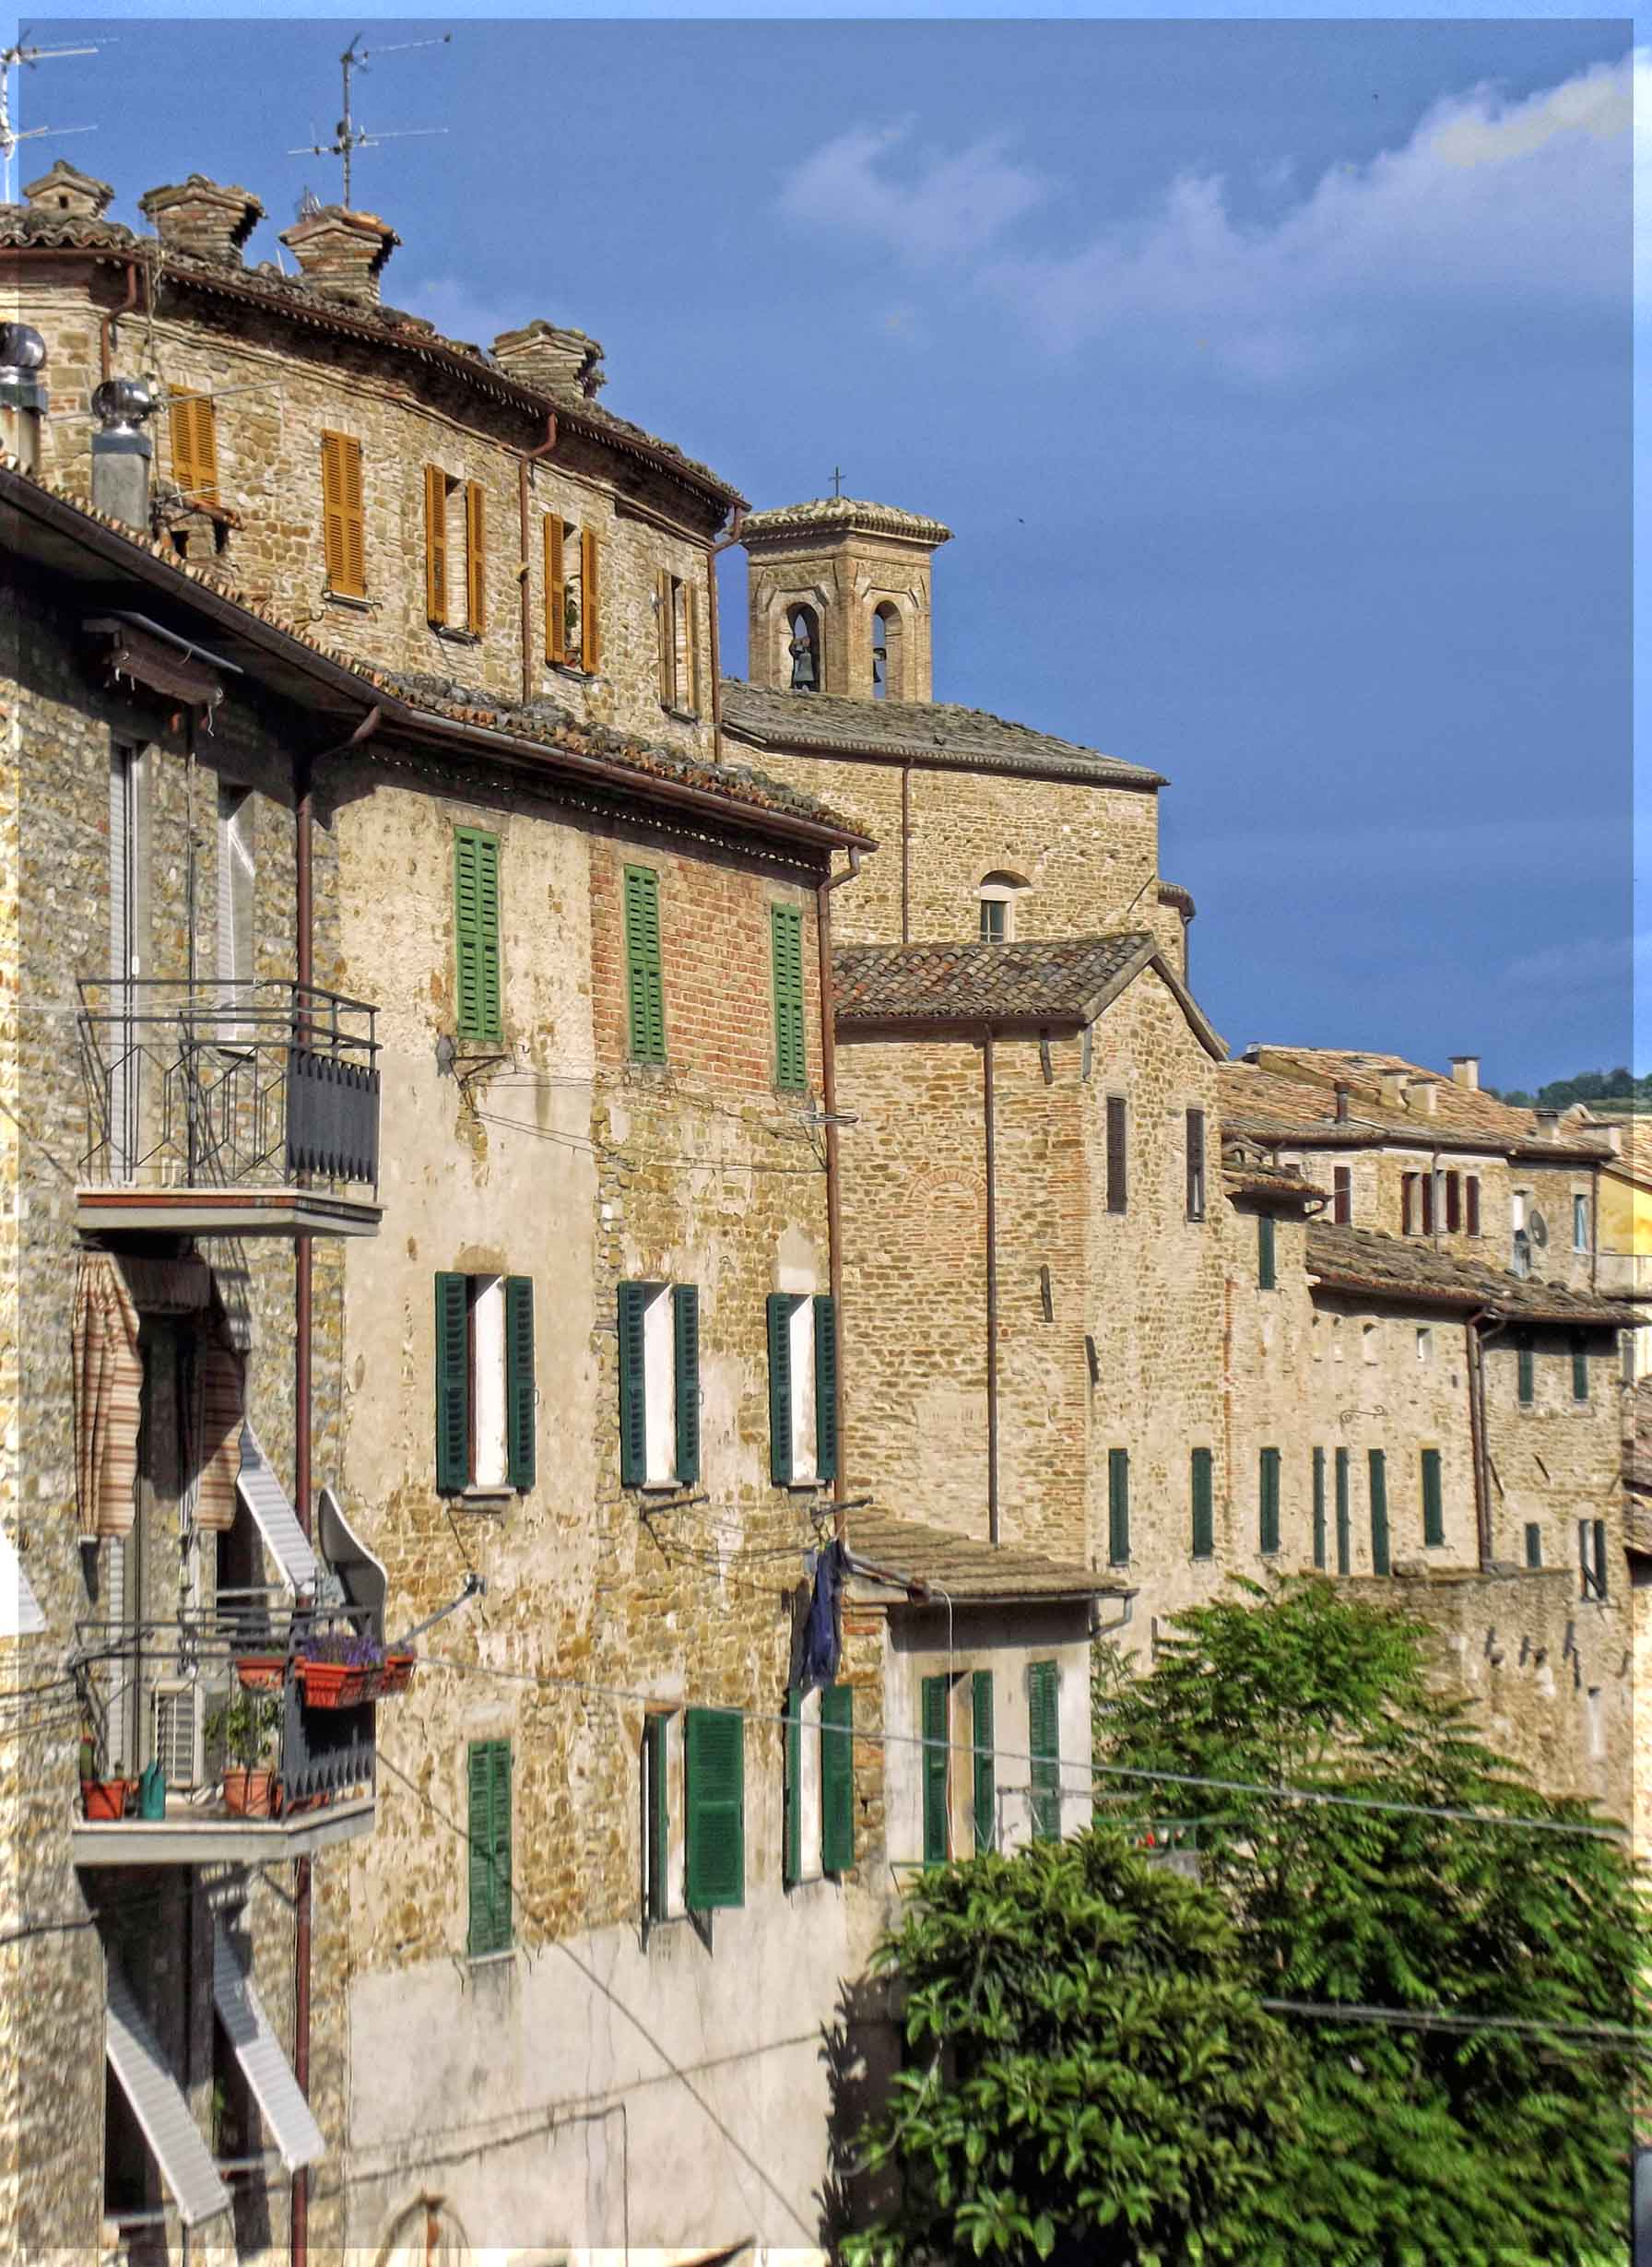 Tall stone houses forming a wall